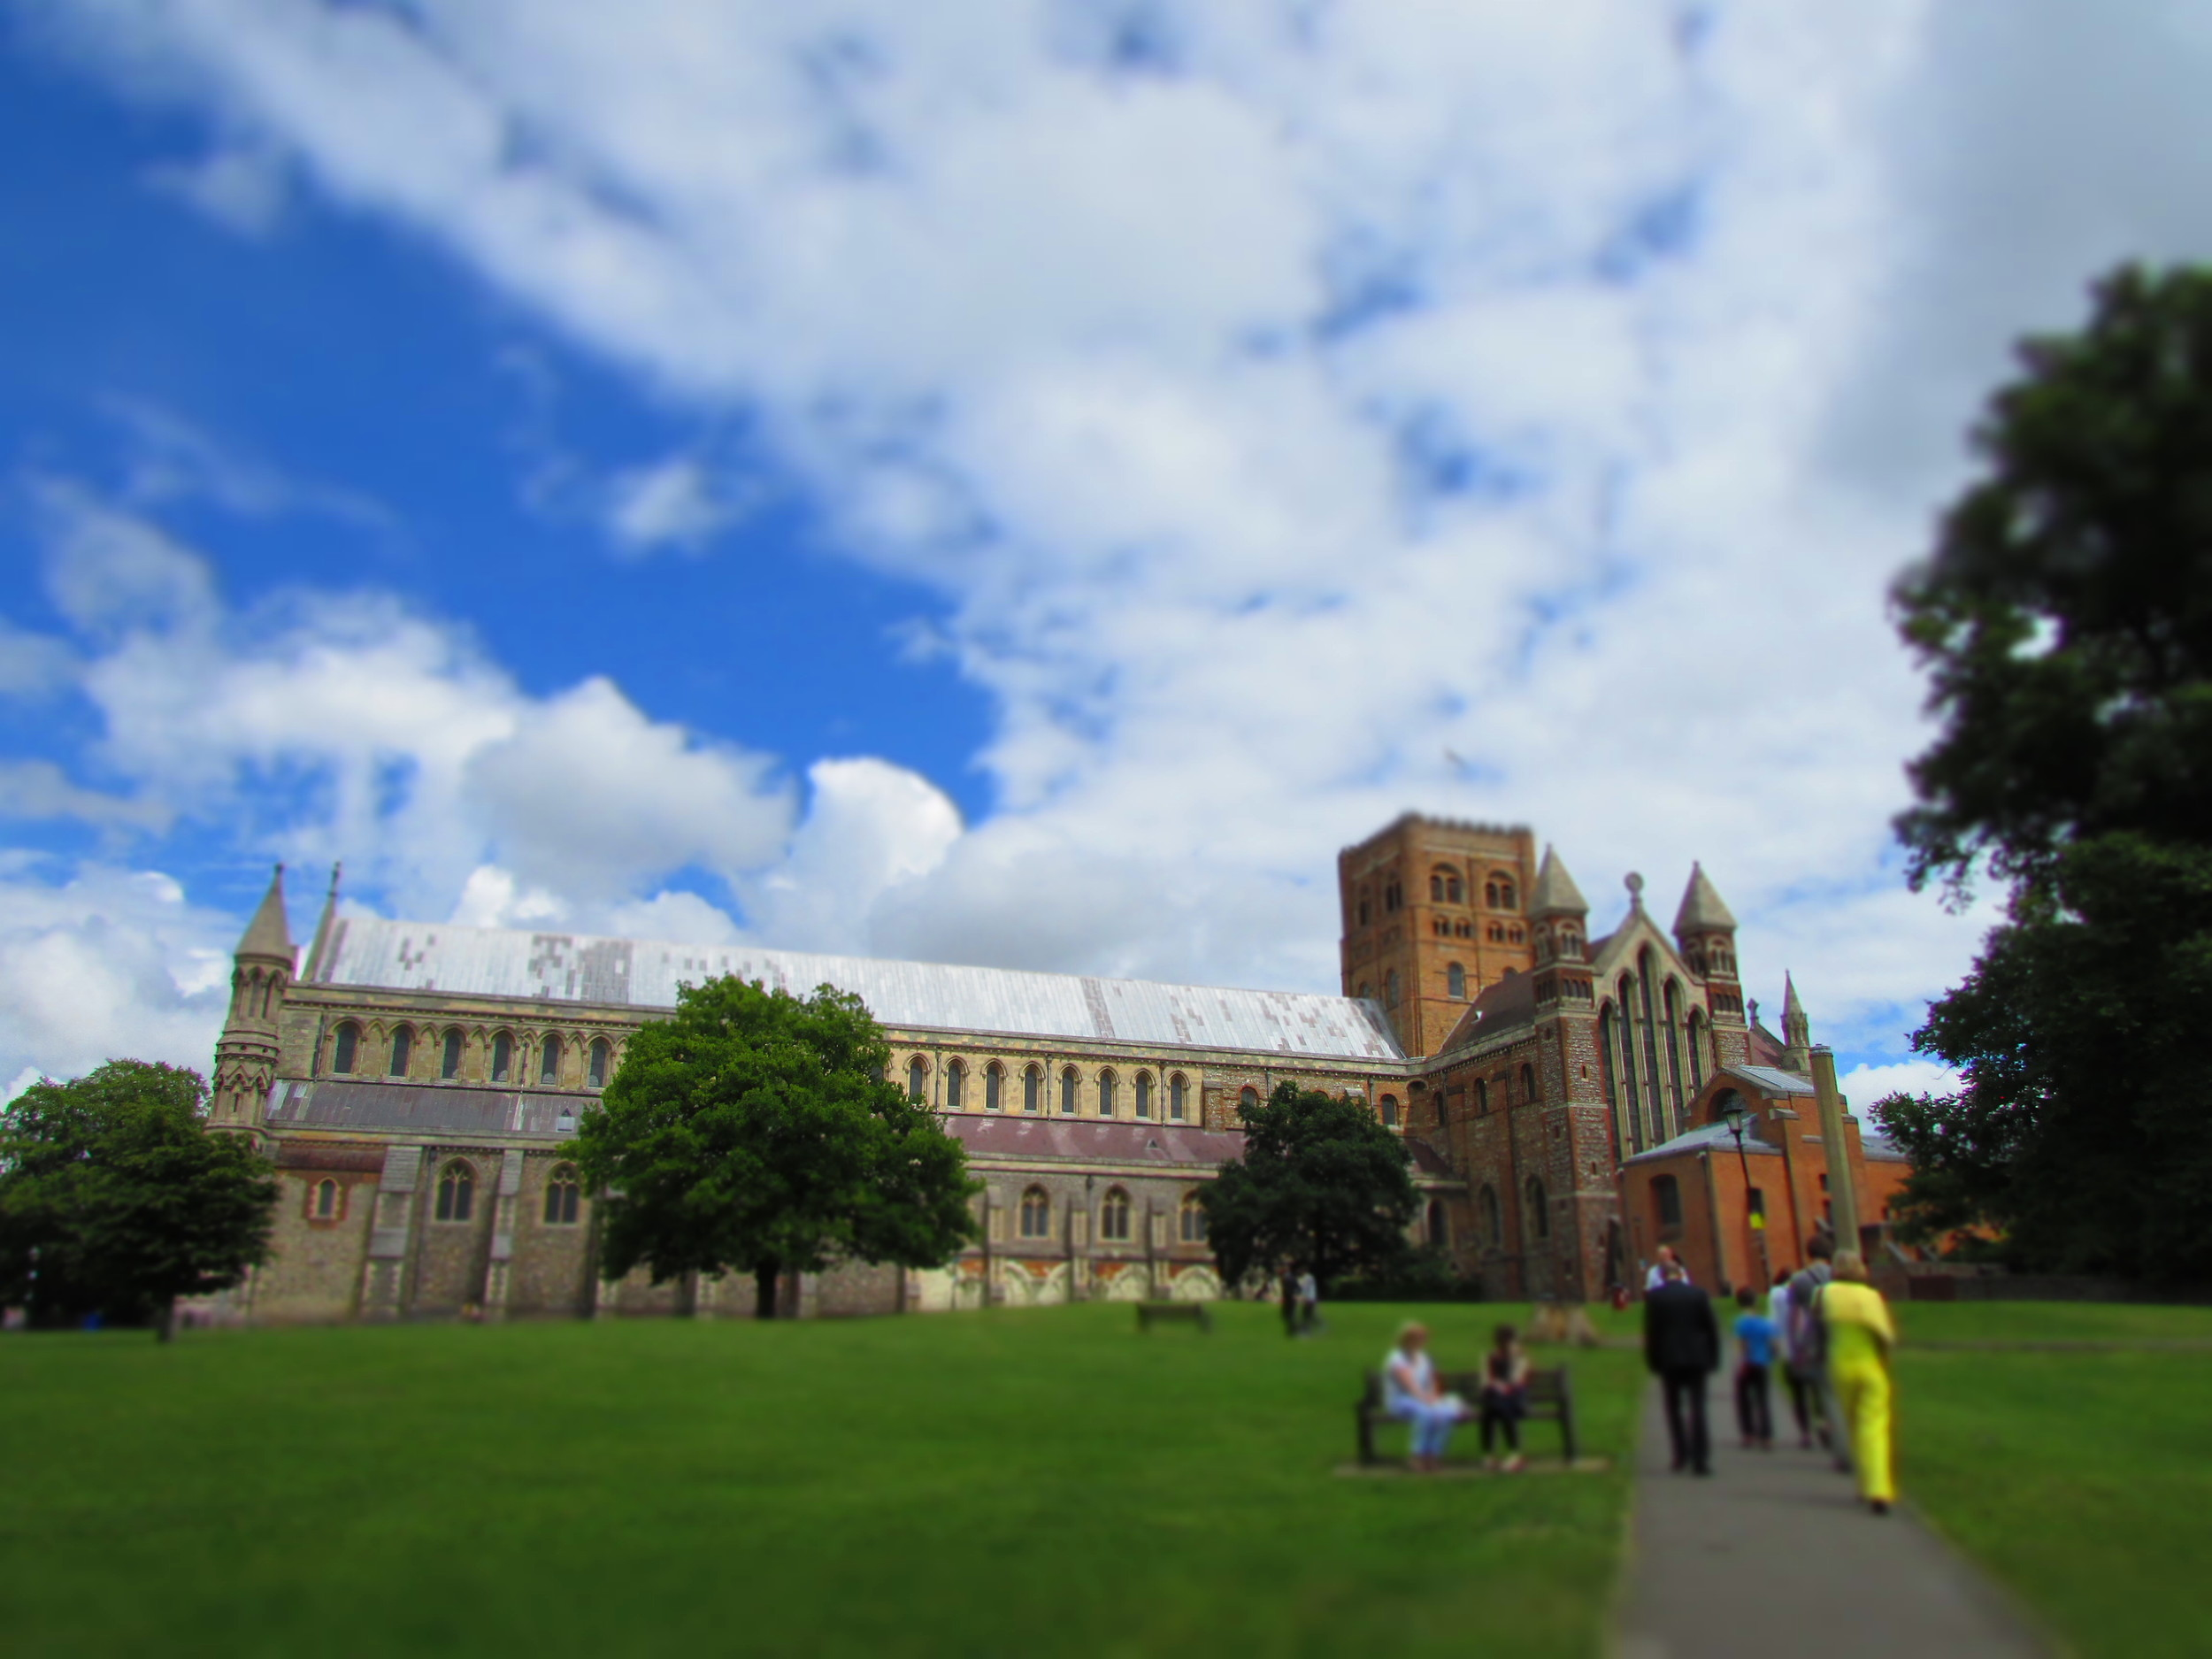 The Cathedral in St Albans, UK